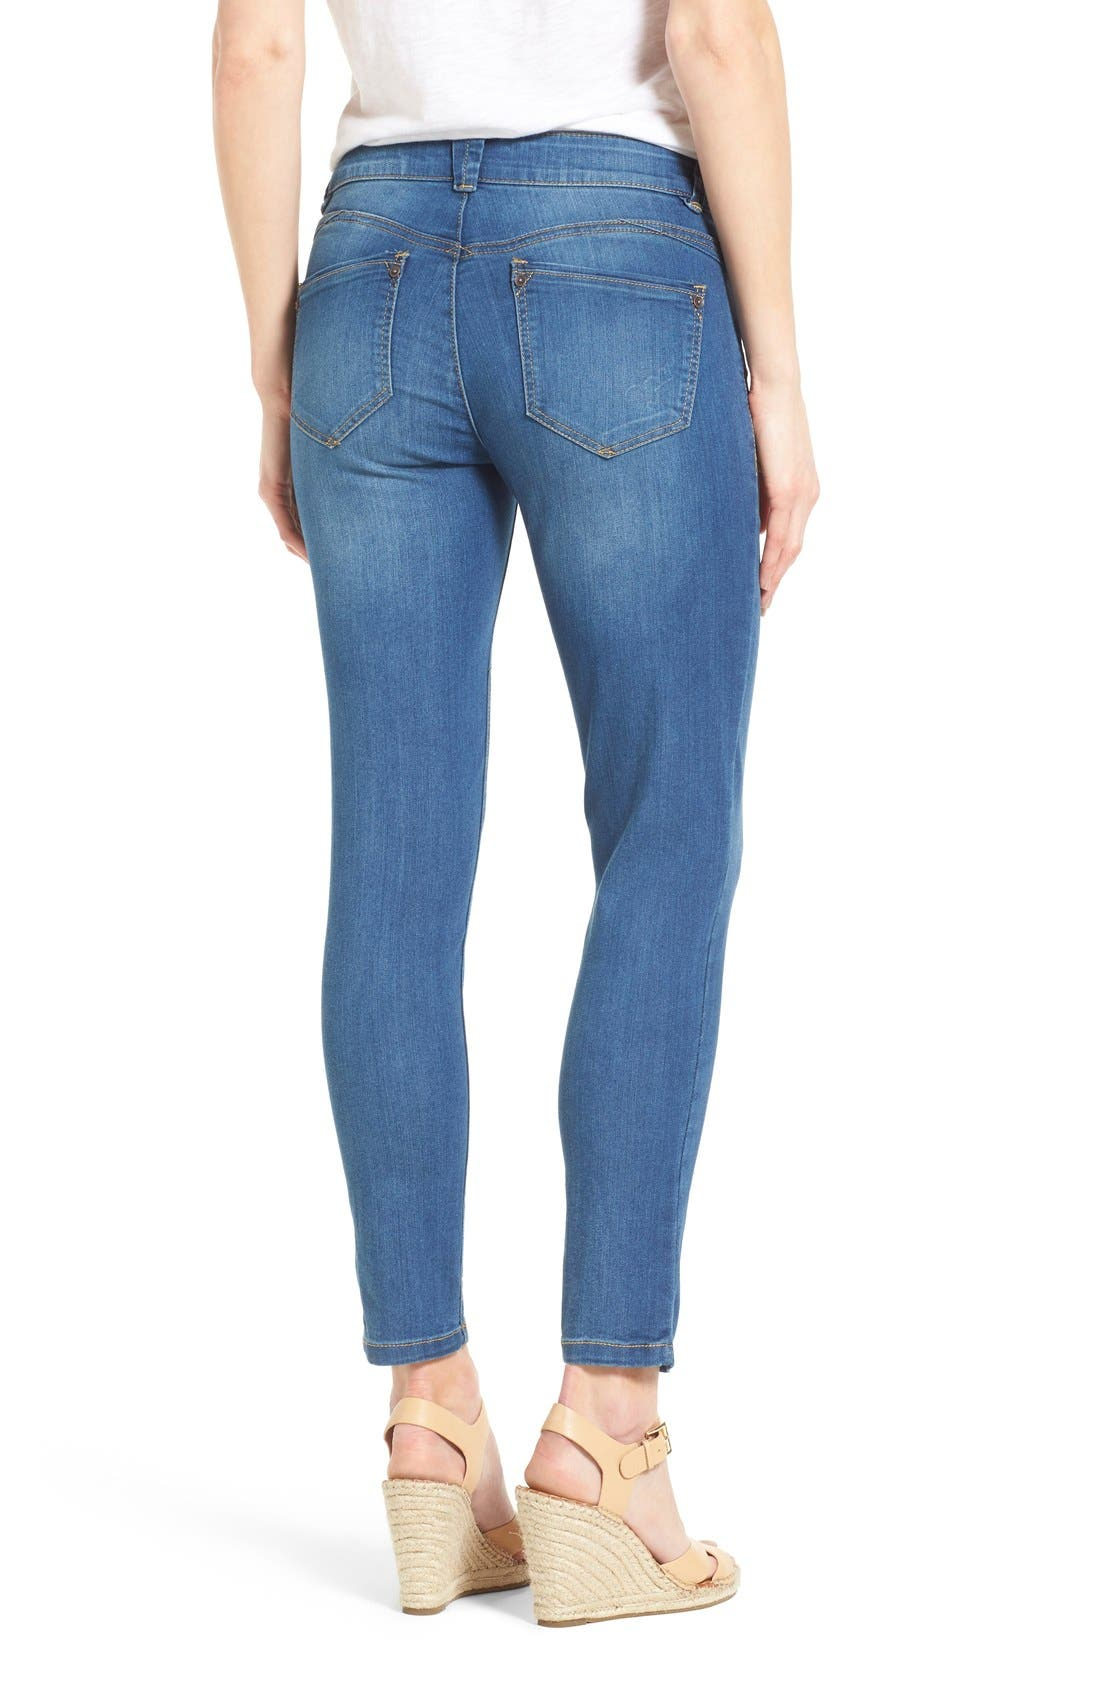 'Ab-solution' Stretch Ankle Skinny Jeans,                             Alternate thumbnail 6, color,                             421